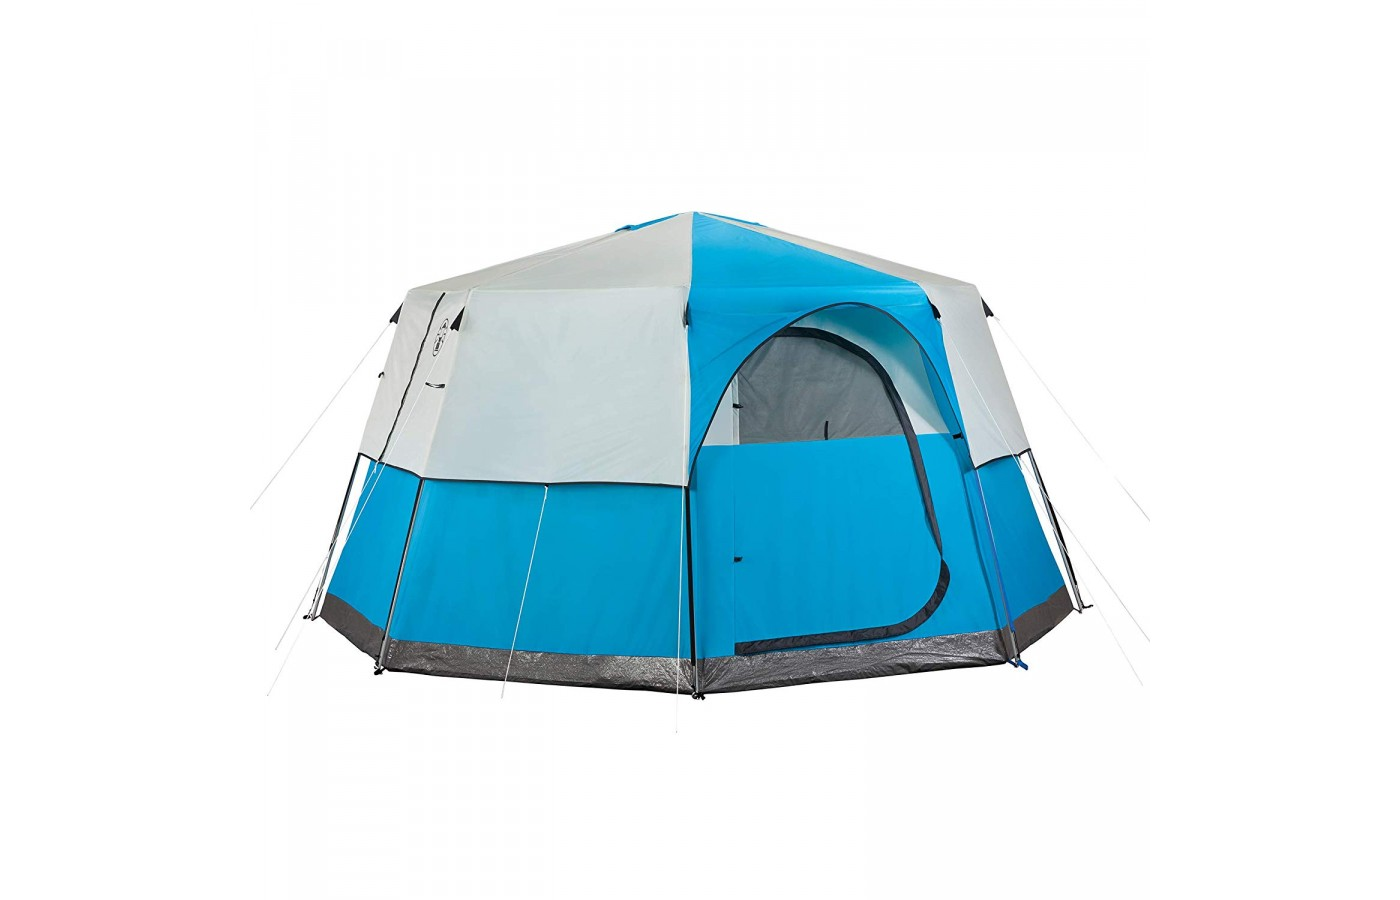 The Coleman Cortes Octagon 8 offers a UV guard to protect the camper against harmful rays caused by the sun.